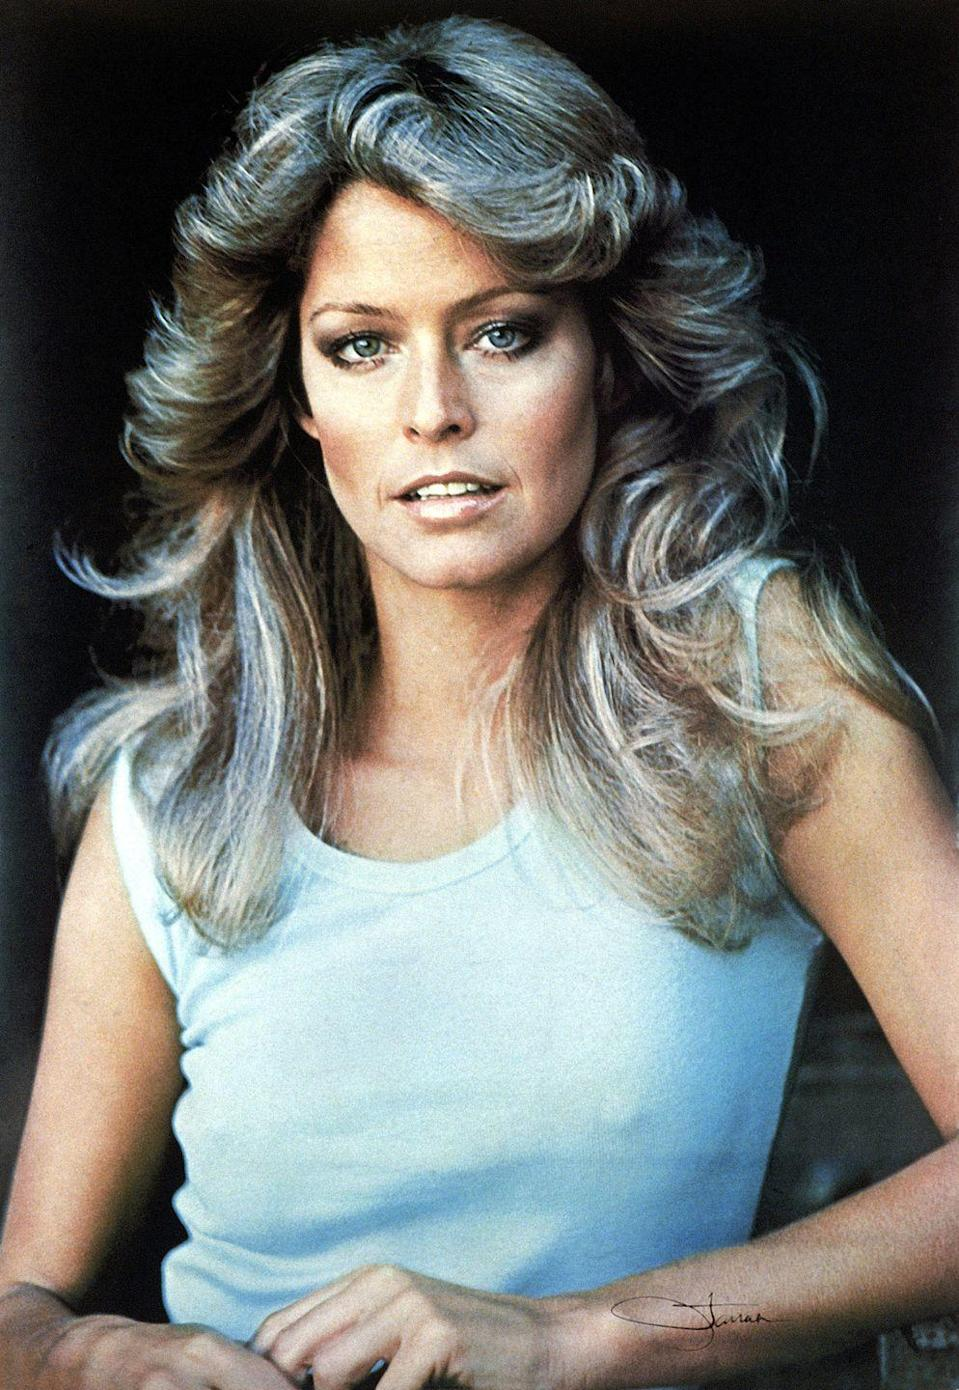 """<p>Farrah Fawcett and her unforgettable hair on <em><a href=""""https://www.goodhousekeeping.com/beauty/anti-aging/news/a35140/jaclyn-smith-2015/"""" rel=""""nofollow noopener"""" target=""""_blank"""" data-ylk=""""slk:Charlie's Angels"""" class=""""link rapid-noclick-resp"""">Charlie's Angels</a></em> inspired countless women to highlight their hair and blow it out into full, sweeping waves.</p>"""